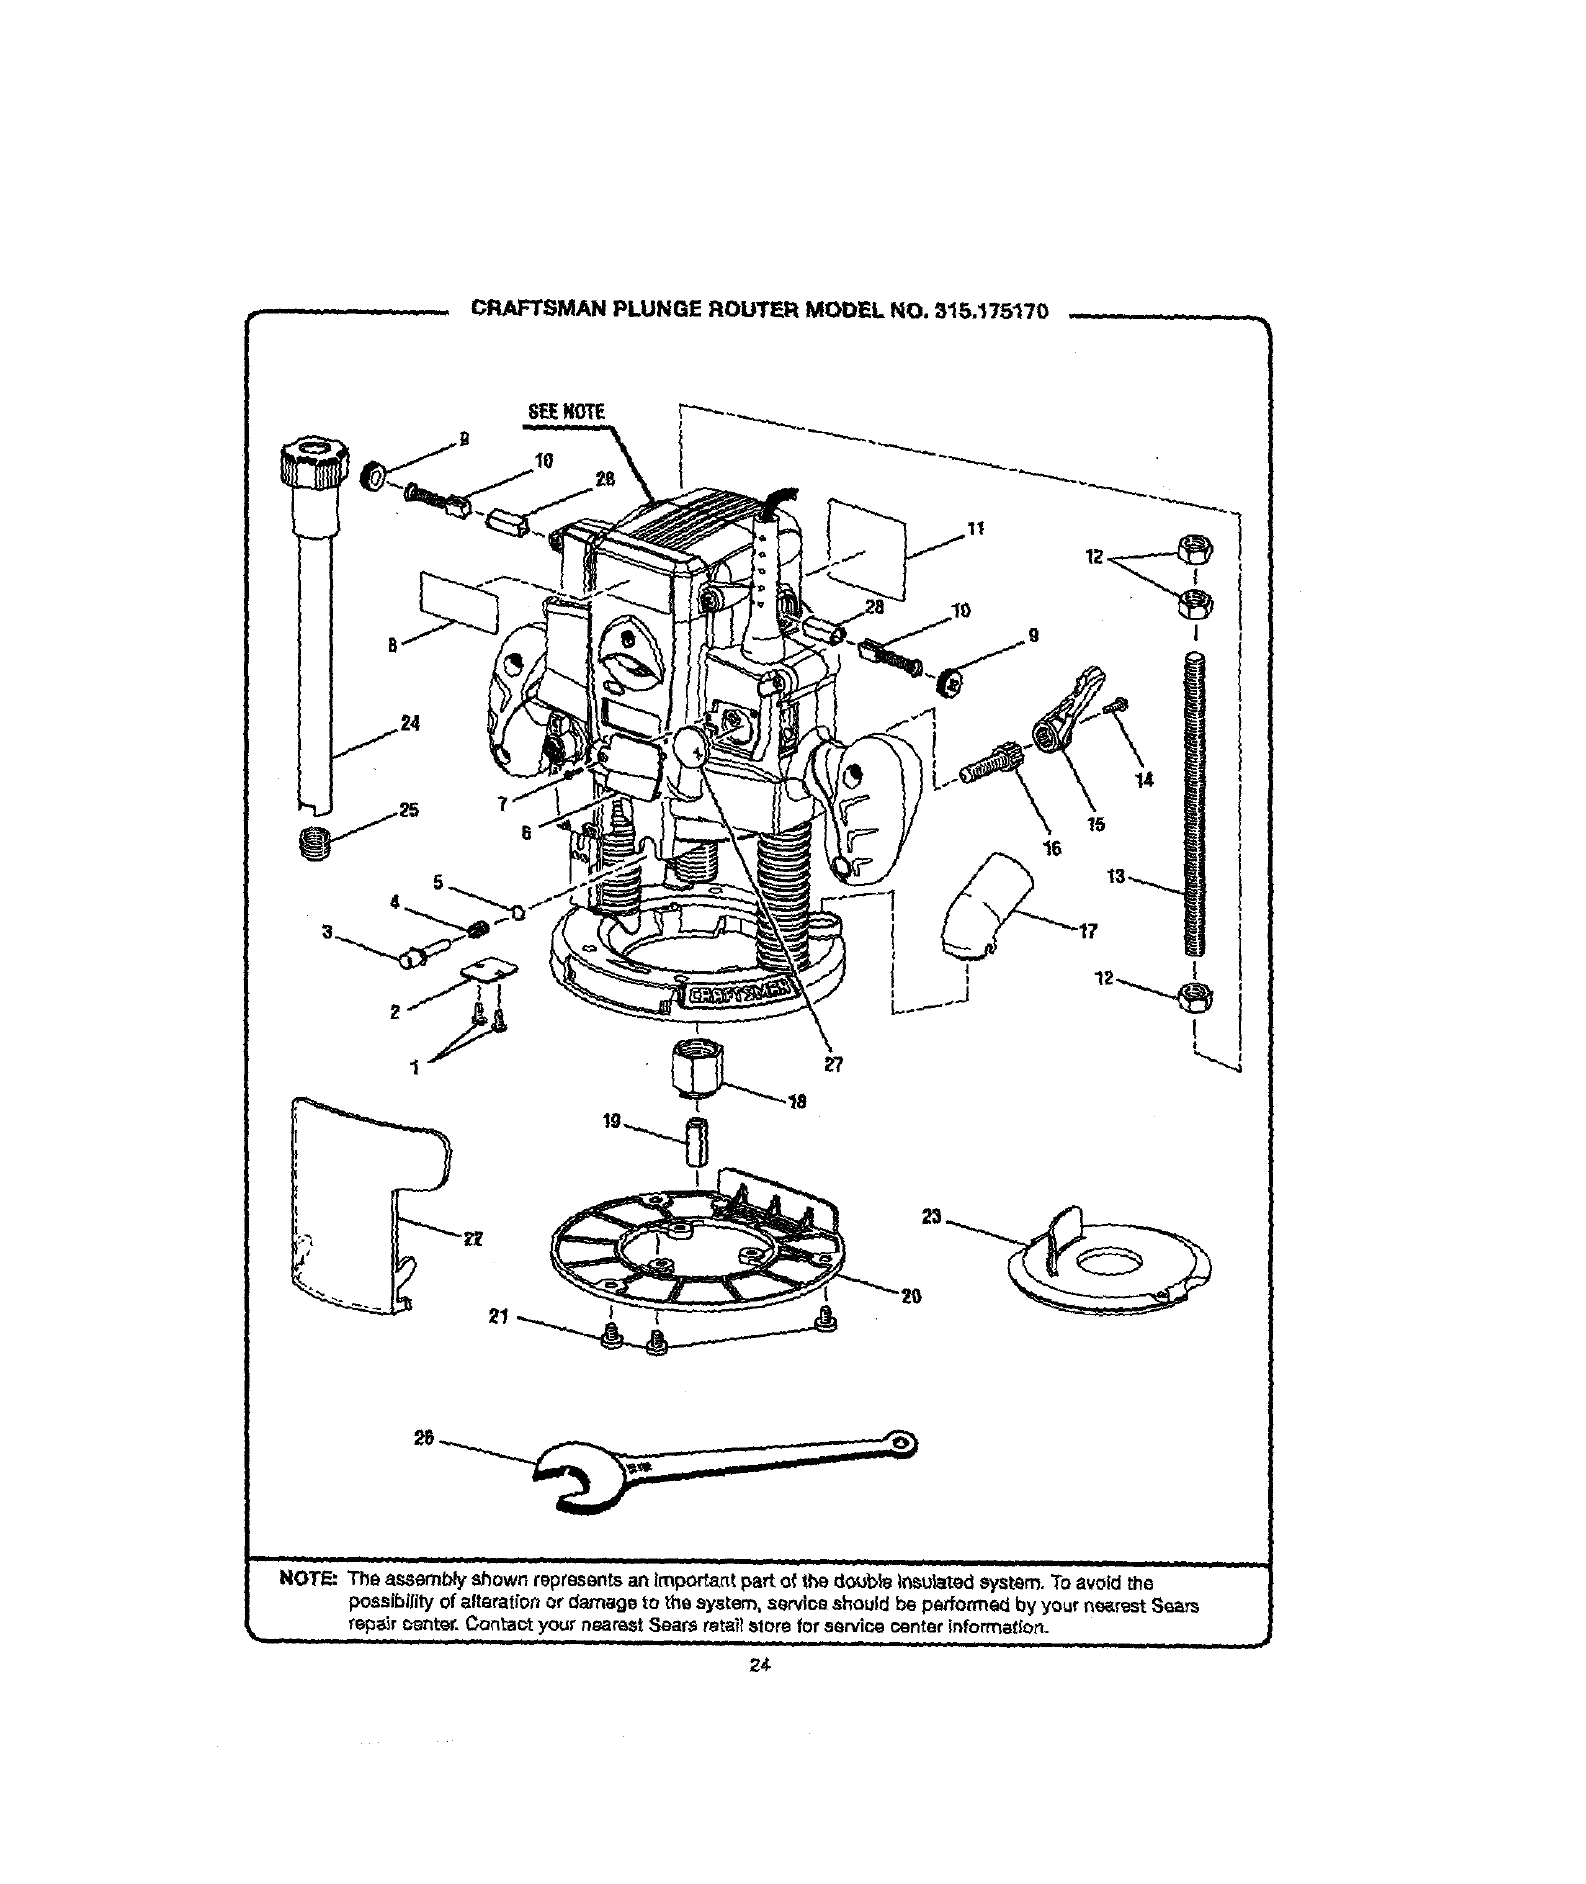 Craftsman 315175170 User Manual Router Manuals And Guides L0609412 Wiring Diagram For Plunge Model No 15175 70